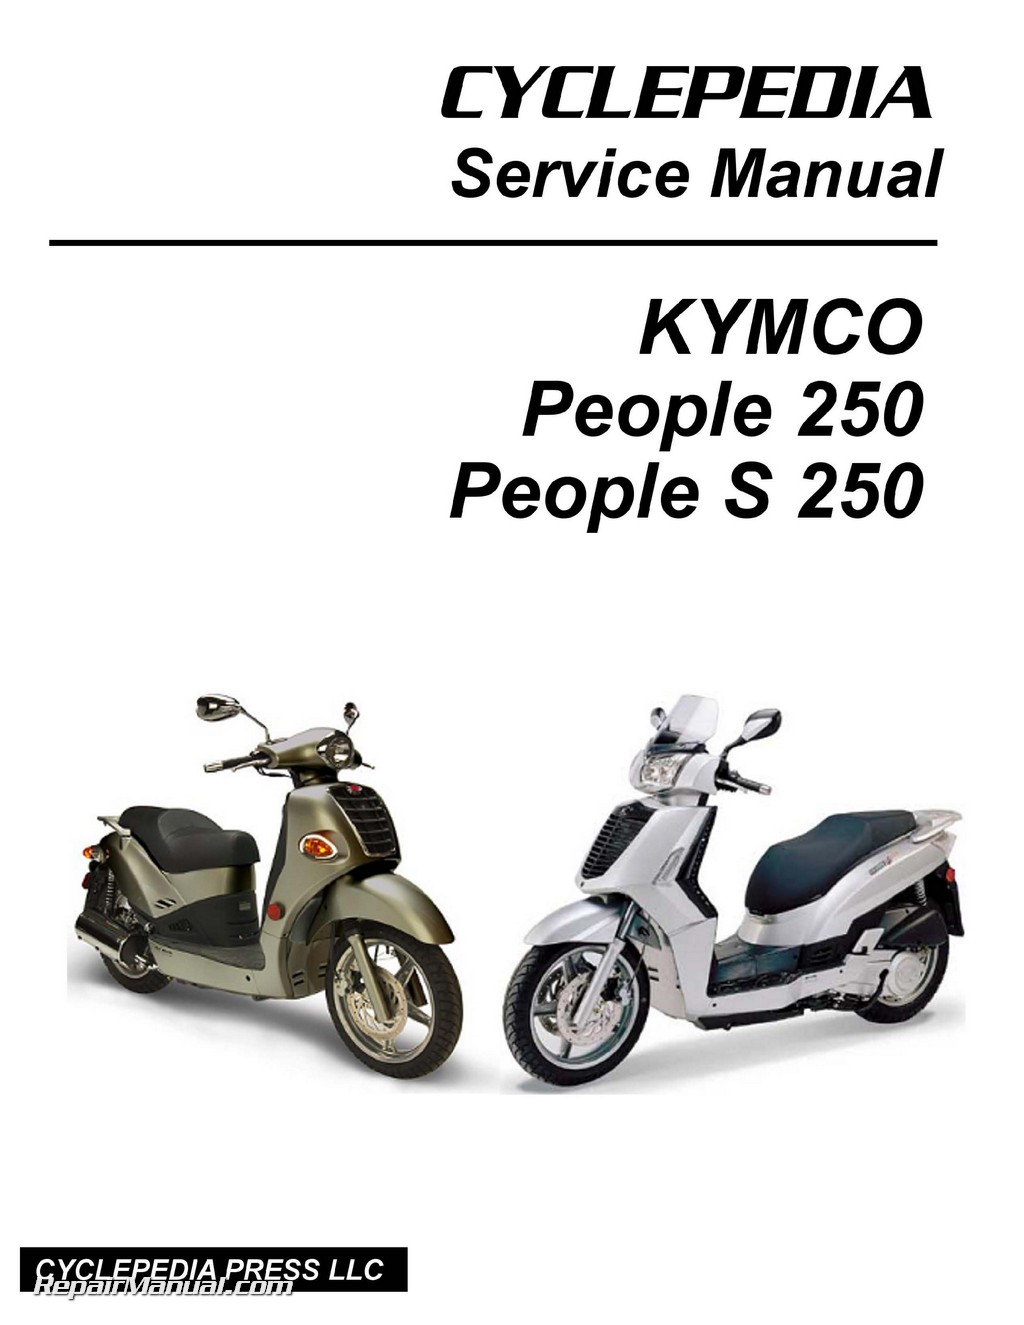 kymco people people s 250 workshop service repair manual